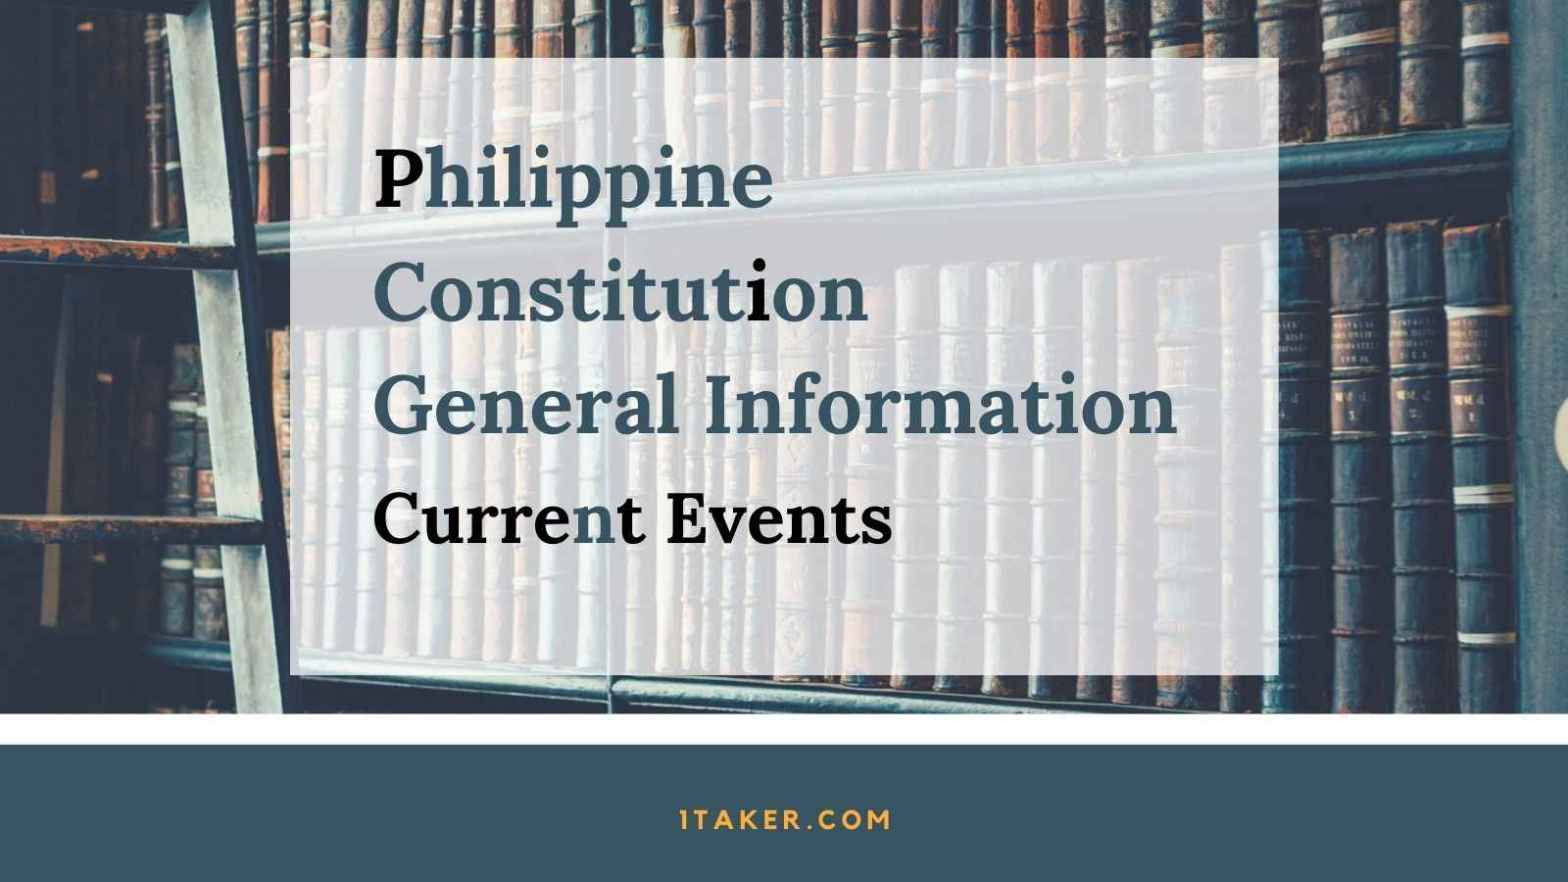 philippine constitution general information current events sample questions